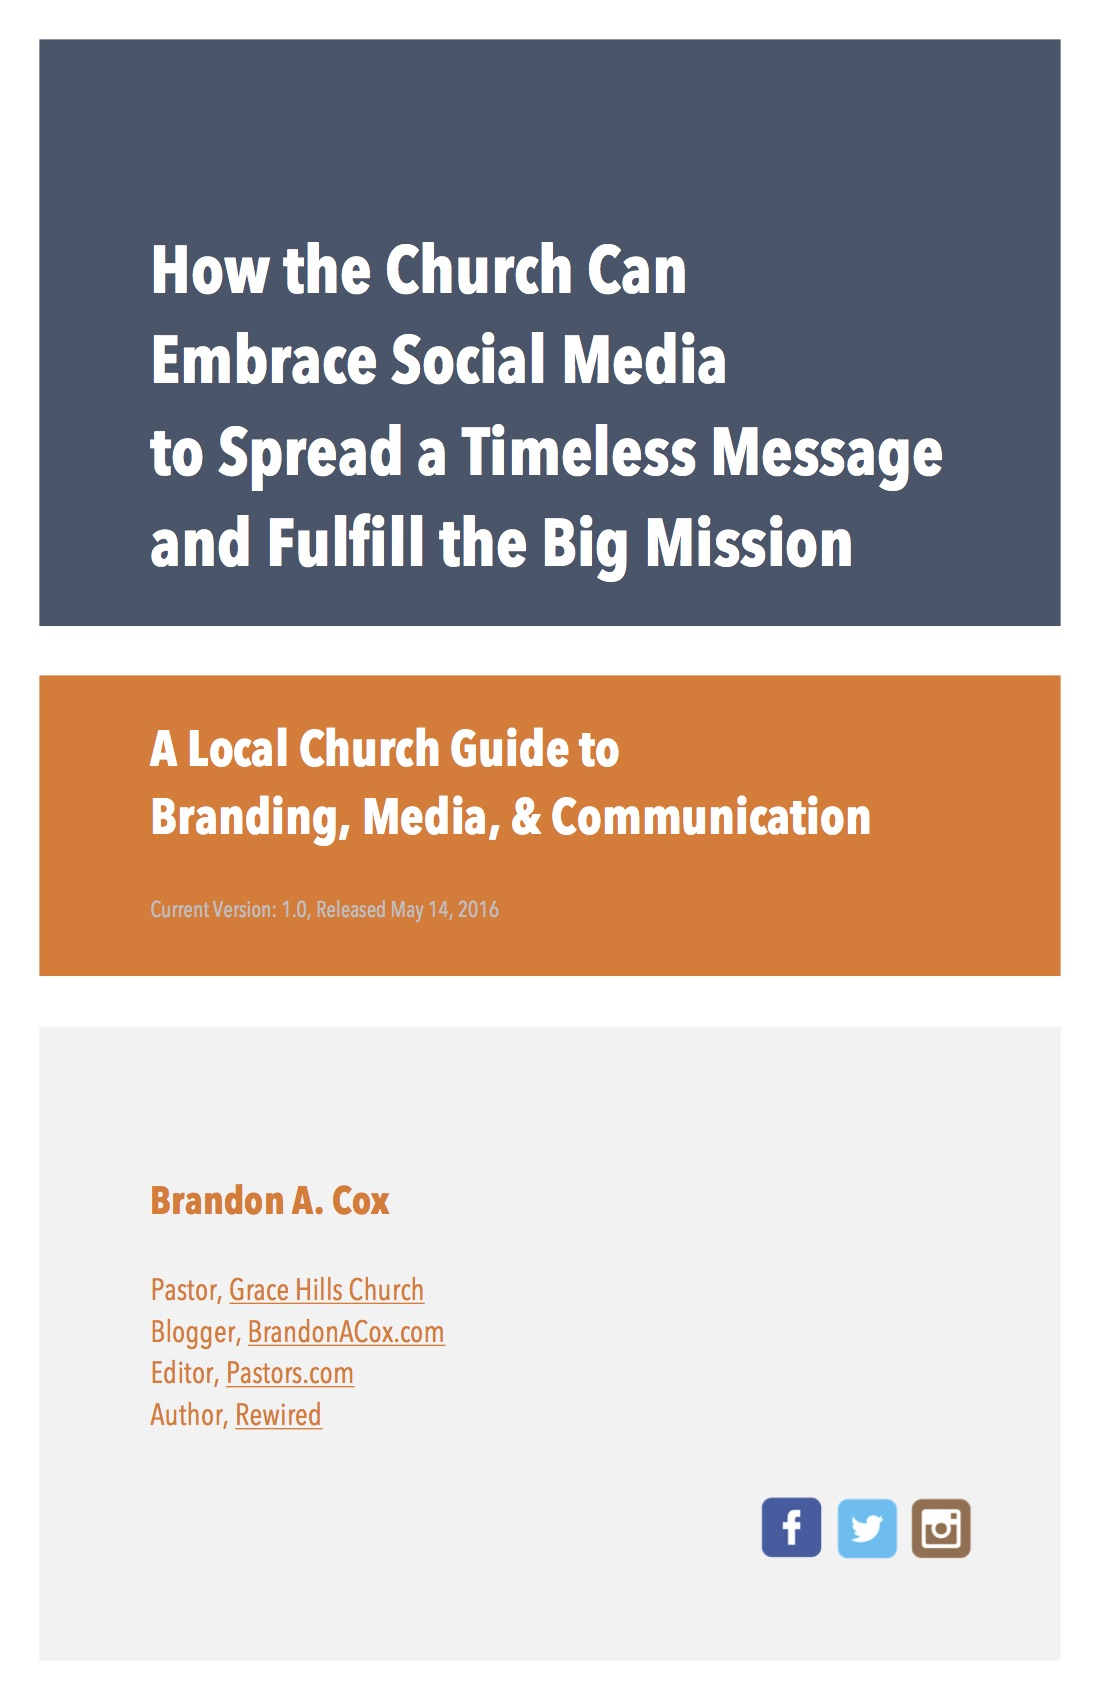 Free Ebook on Church and Social Media